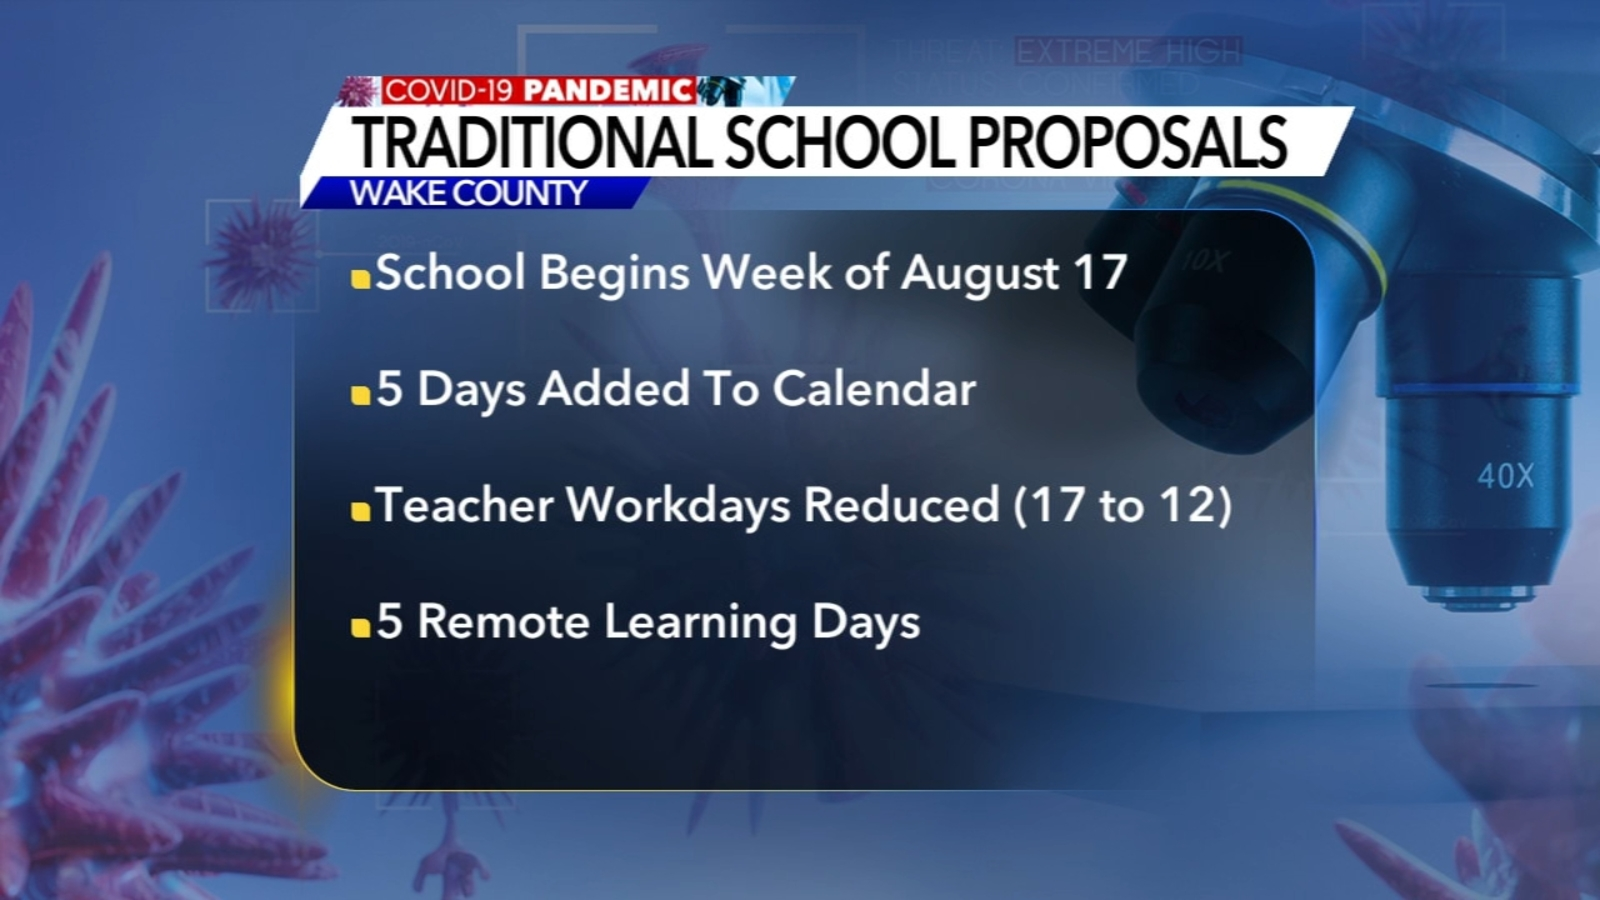 Wake County Schools proposes changes to 2020 21 school calendar in